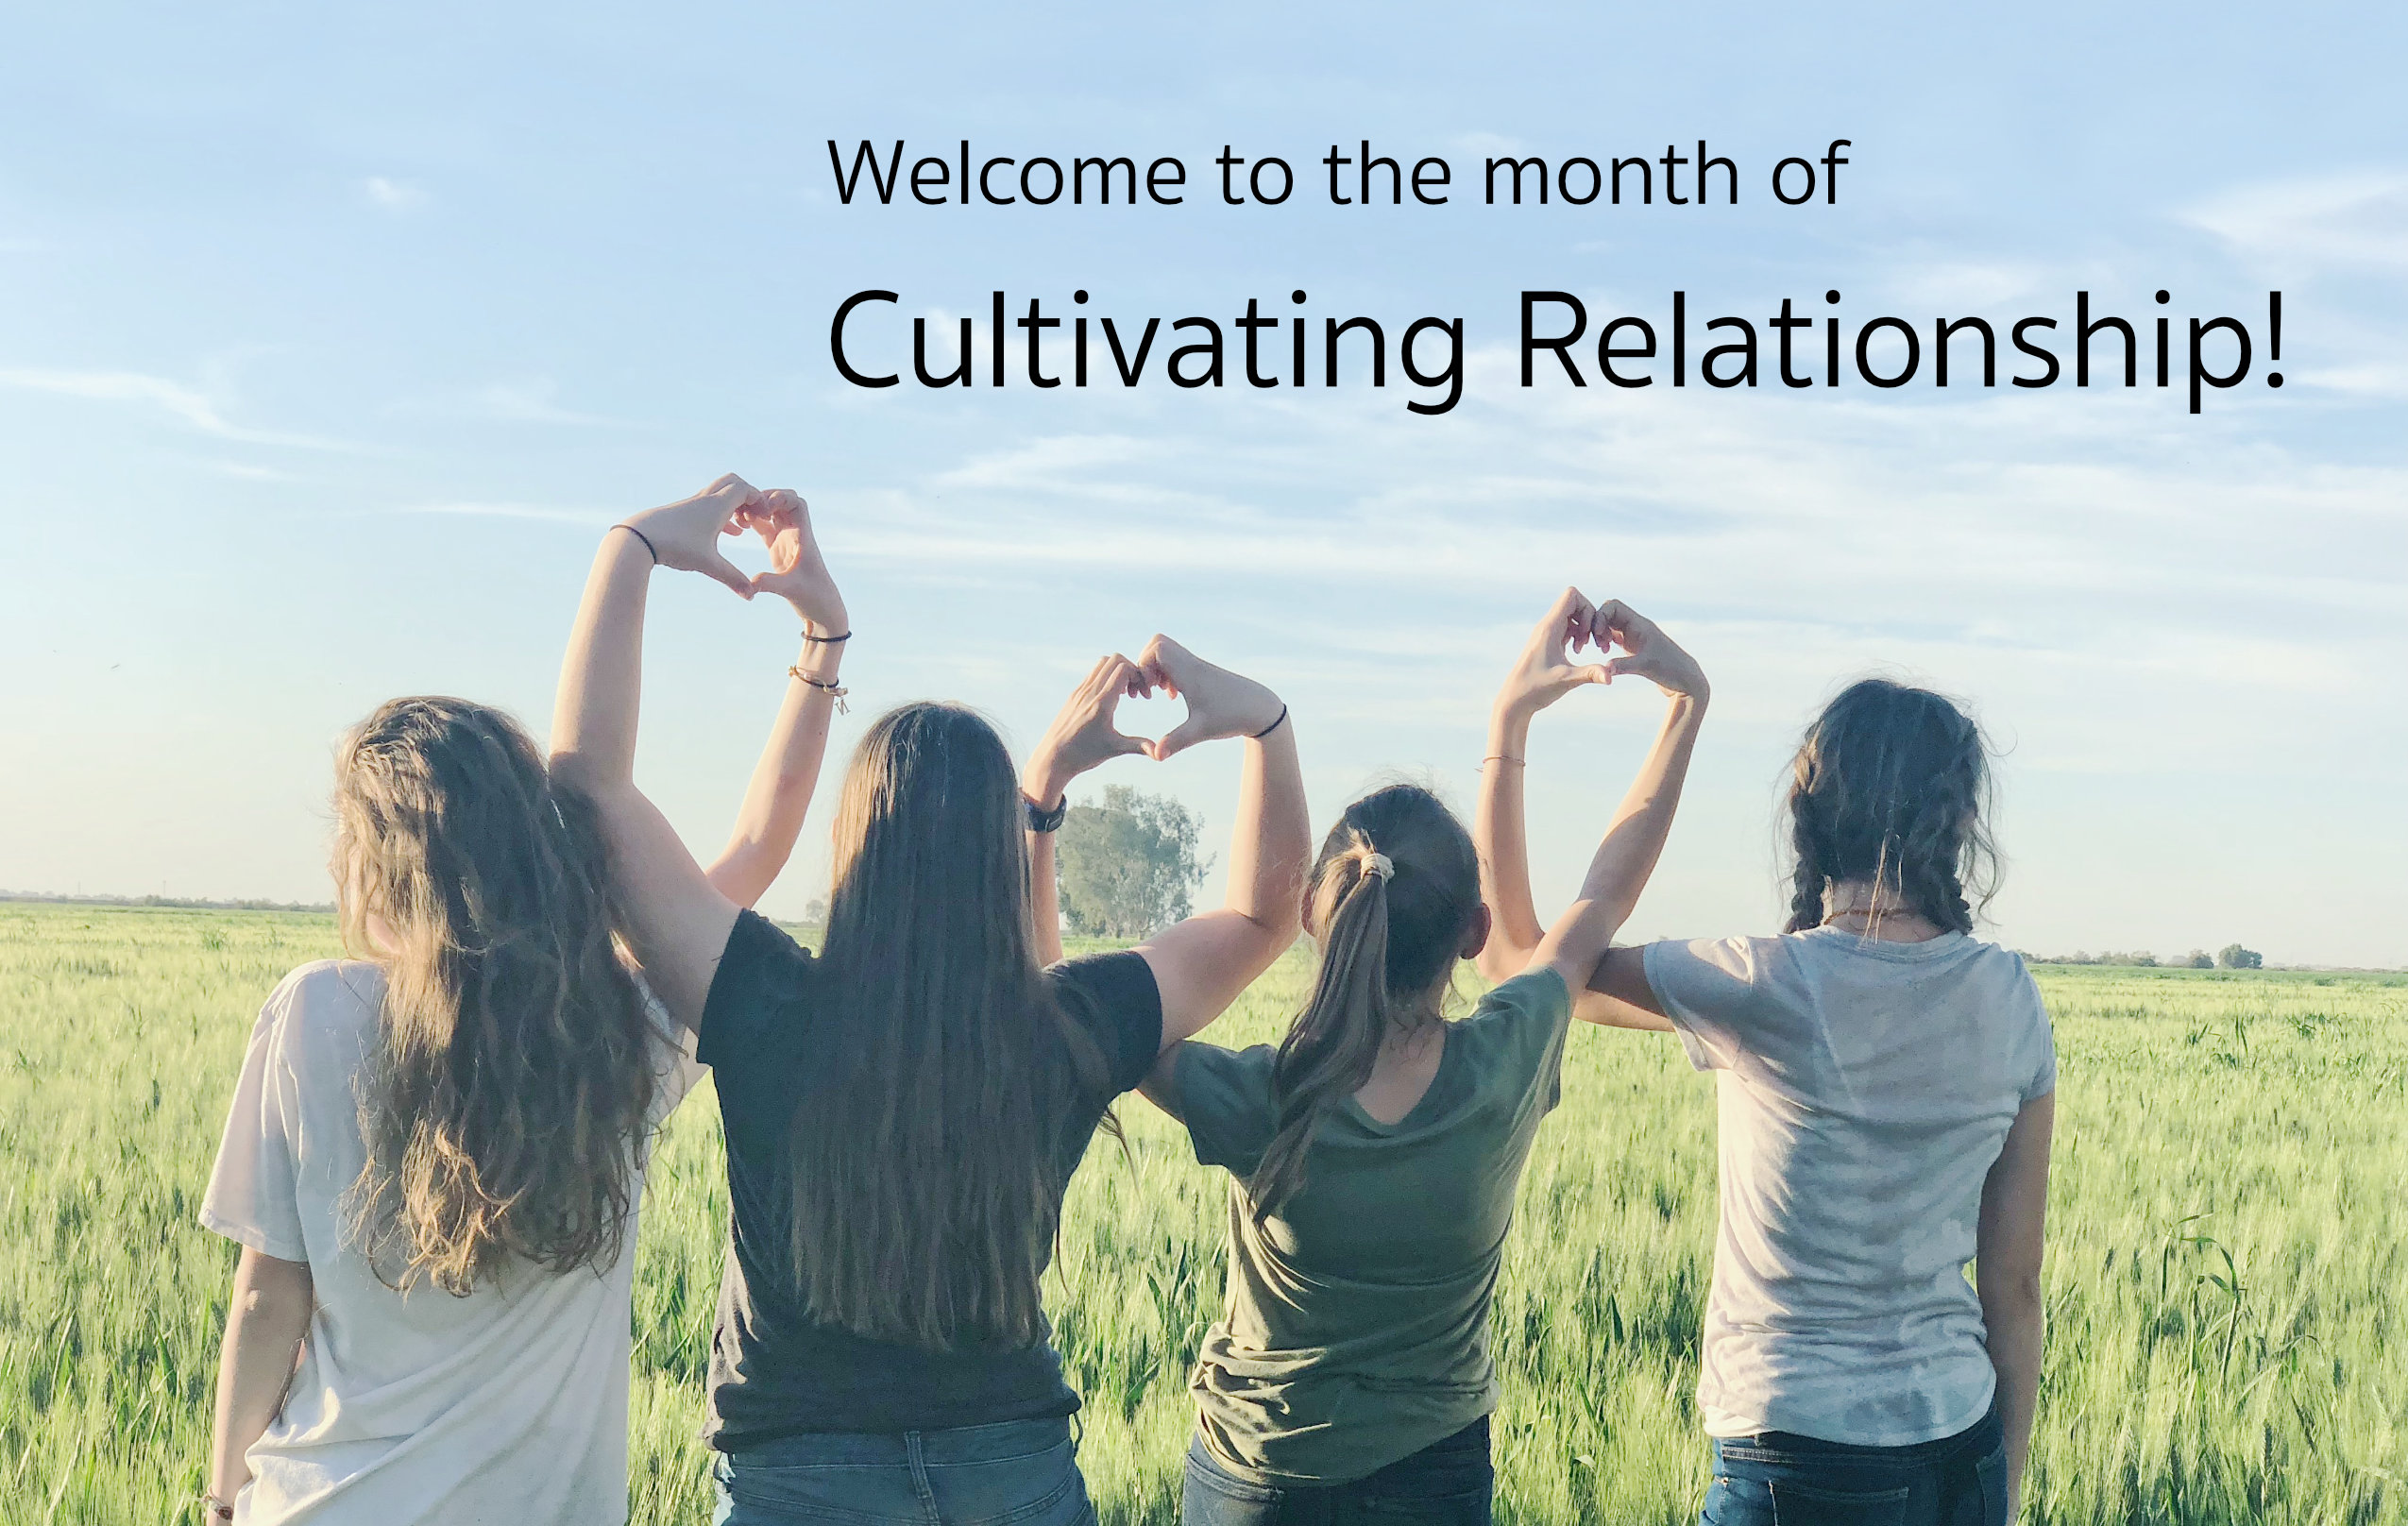 Month of cultivating relationships